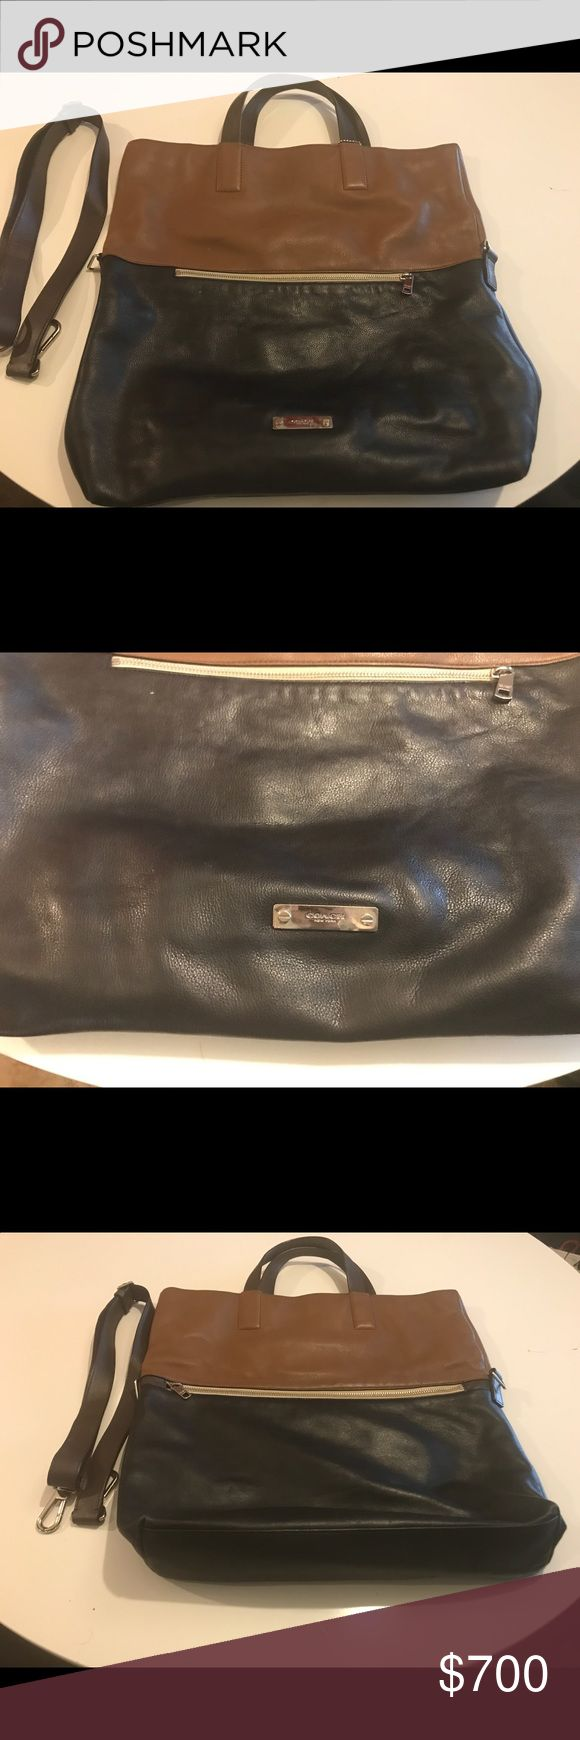 Two-tone leather coach travel bag Coach two-tone leather tote bag that has pockets on each side.  It has removable straps if you just want to carry it by the handles. It is very wide and deep so it can fit a lot of clothes in it. Perfect for traveling. Coach Bags Travel Bags